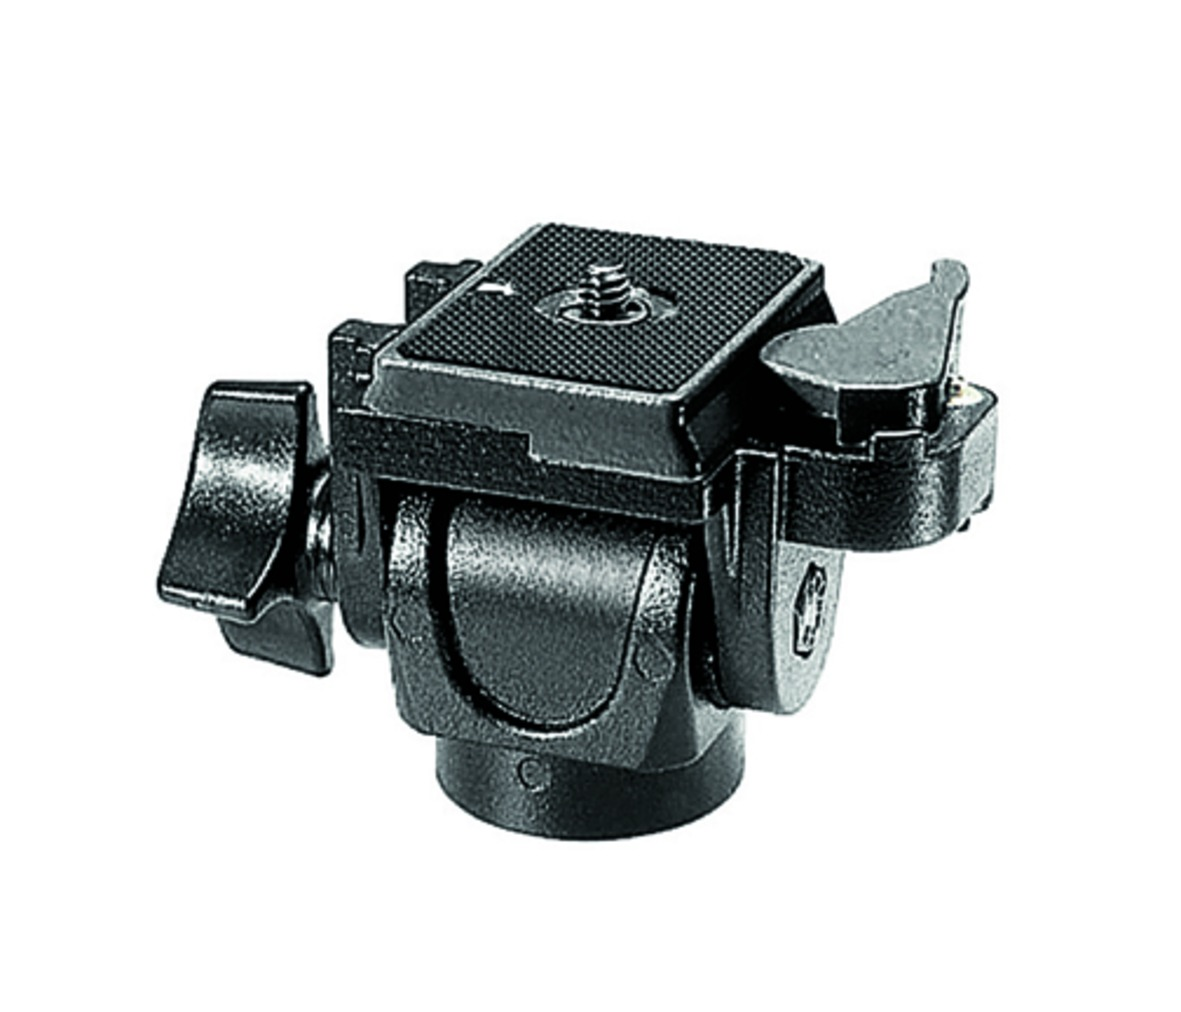 MANFROTTO 234RC CABECA MONOPE + PRATO RC